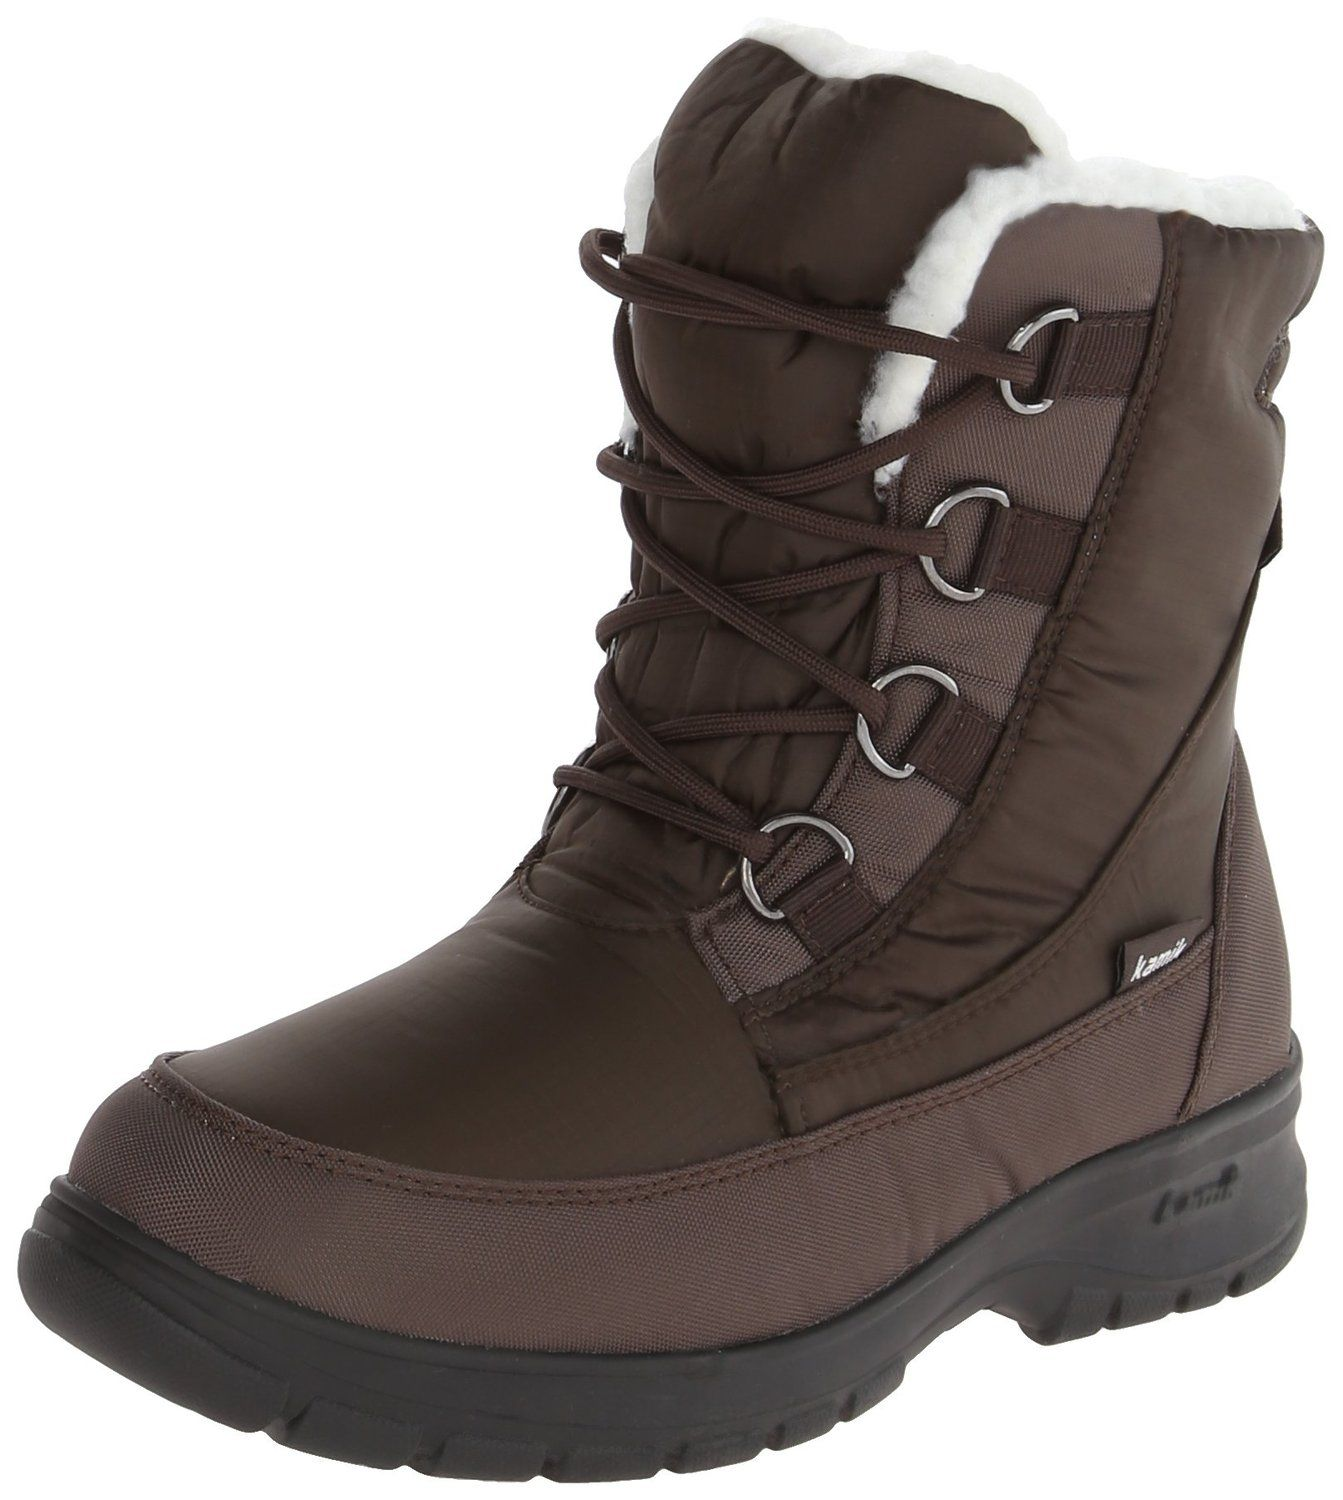 9a3bd7ff442 Kamik Women s Baltimore Boot    Review more details here   Women s winter  boots